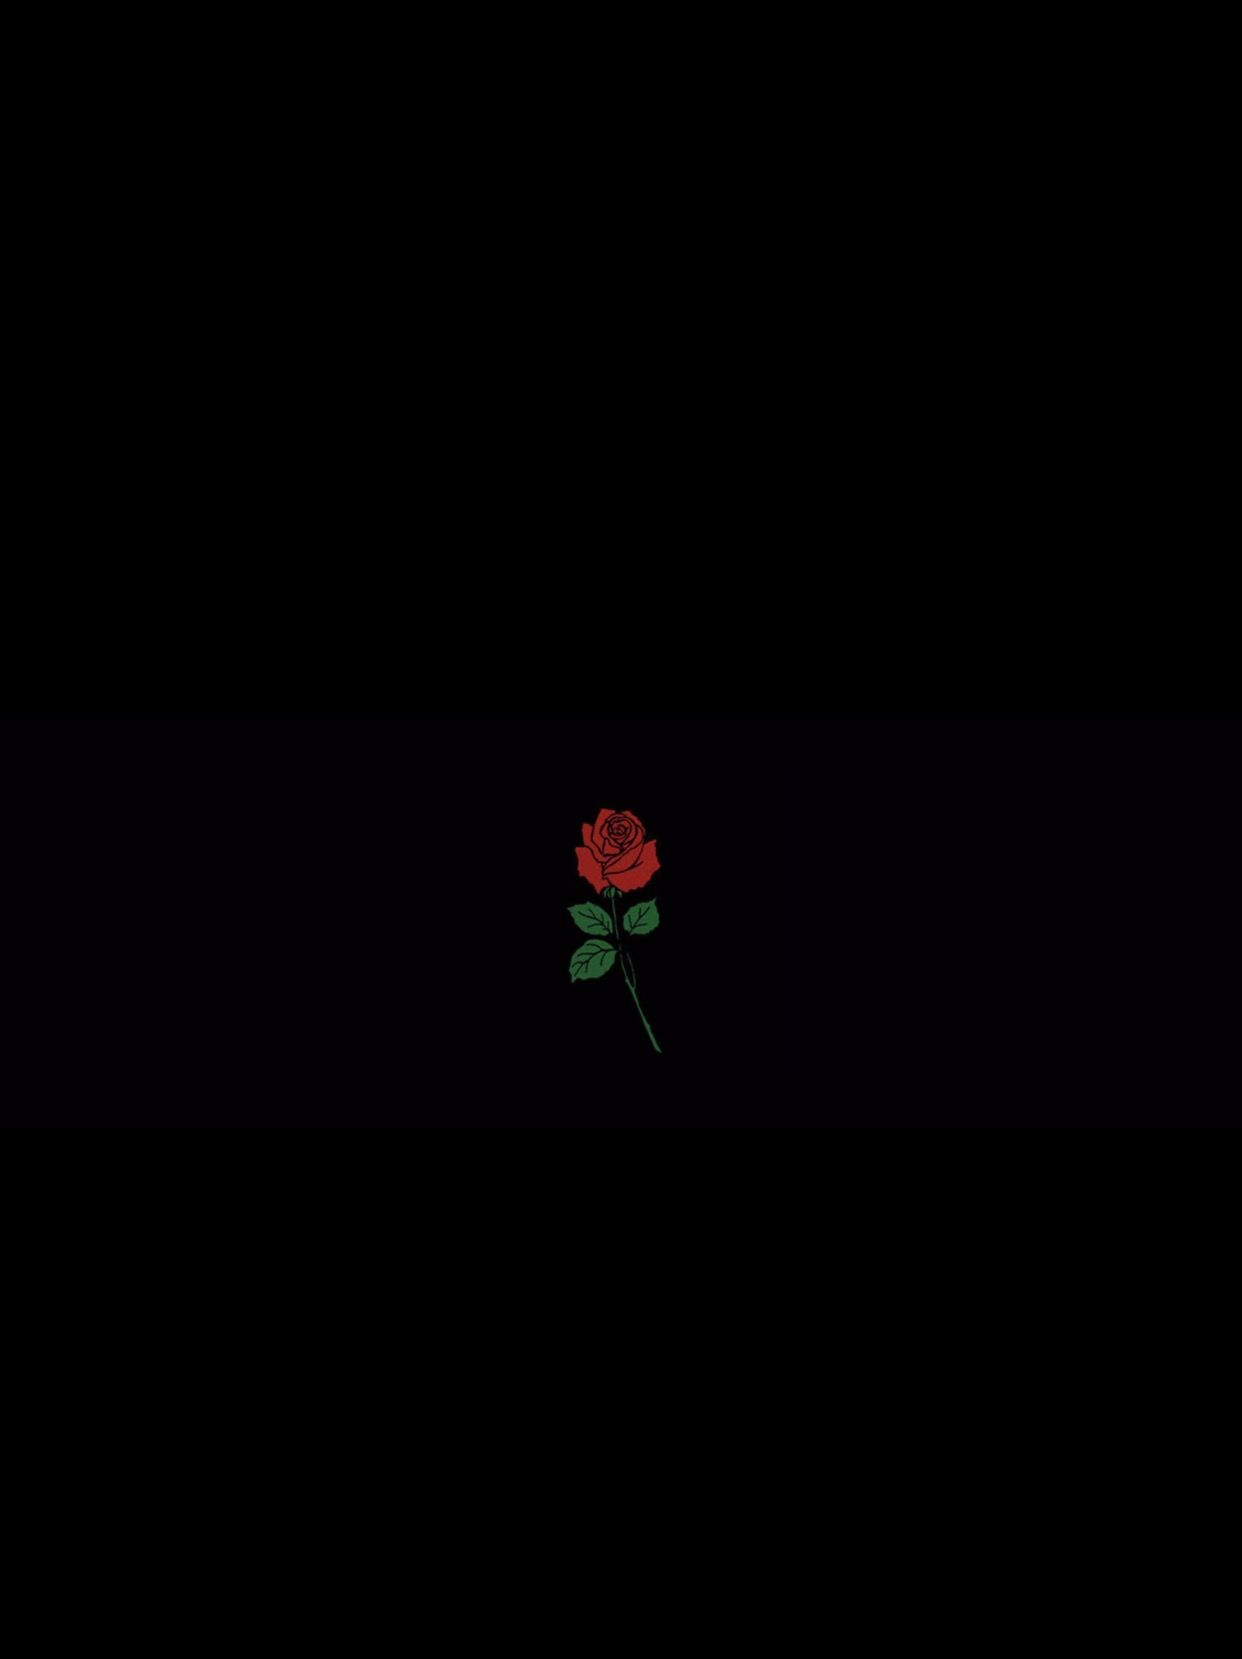 Itsallabouttj Fw Me Dark Wallpaper Rose Wallpaper